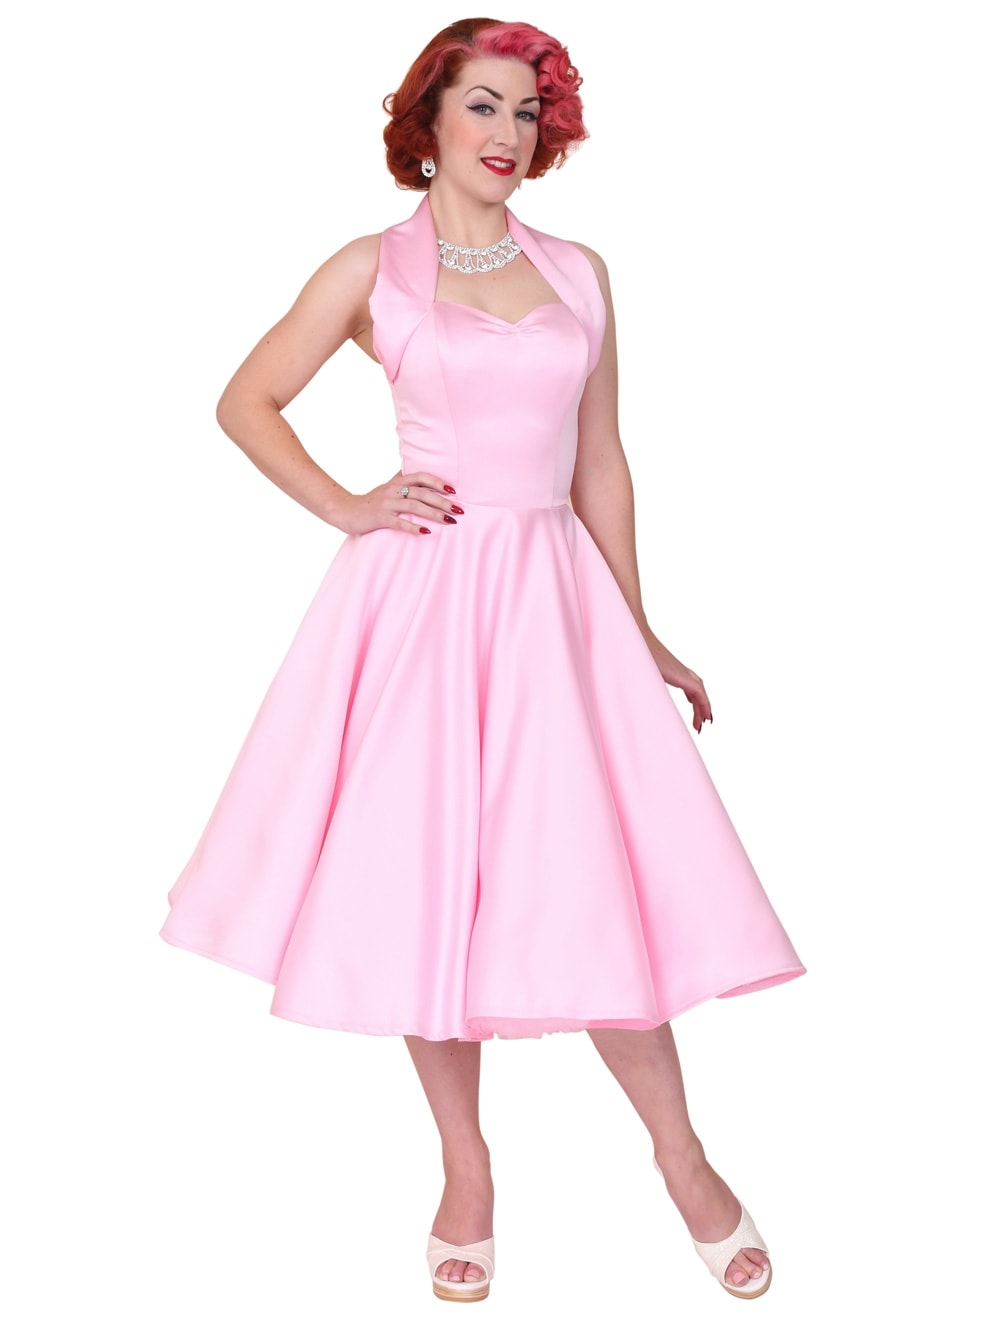 1950s vintage reproduction halter dress pinup style